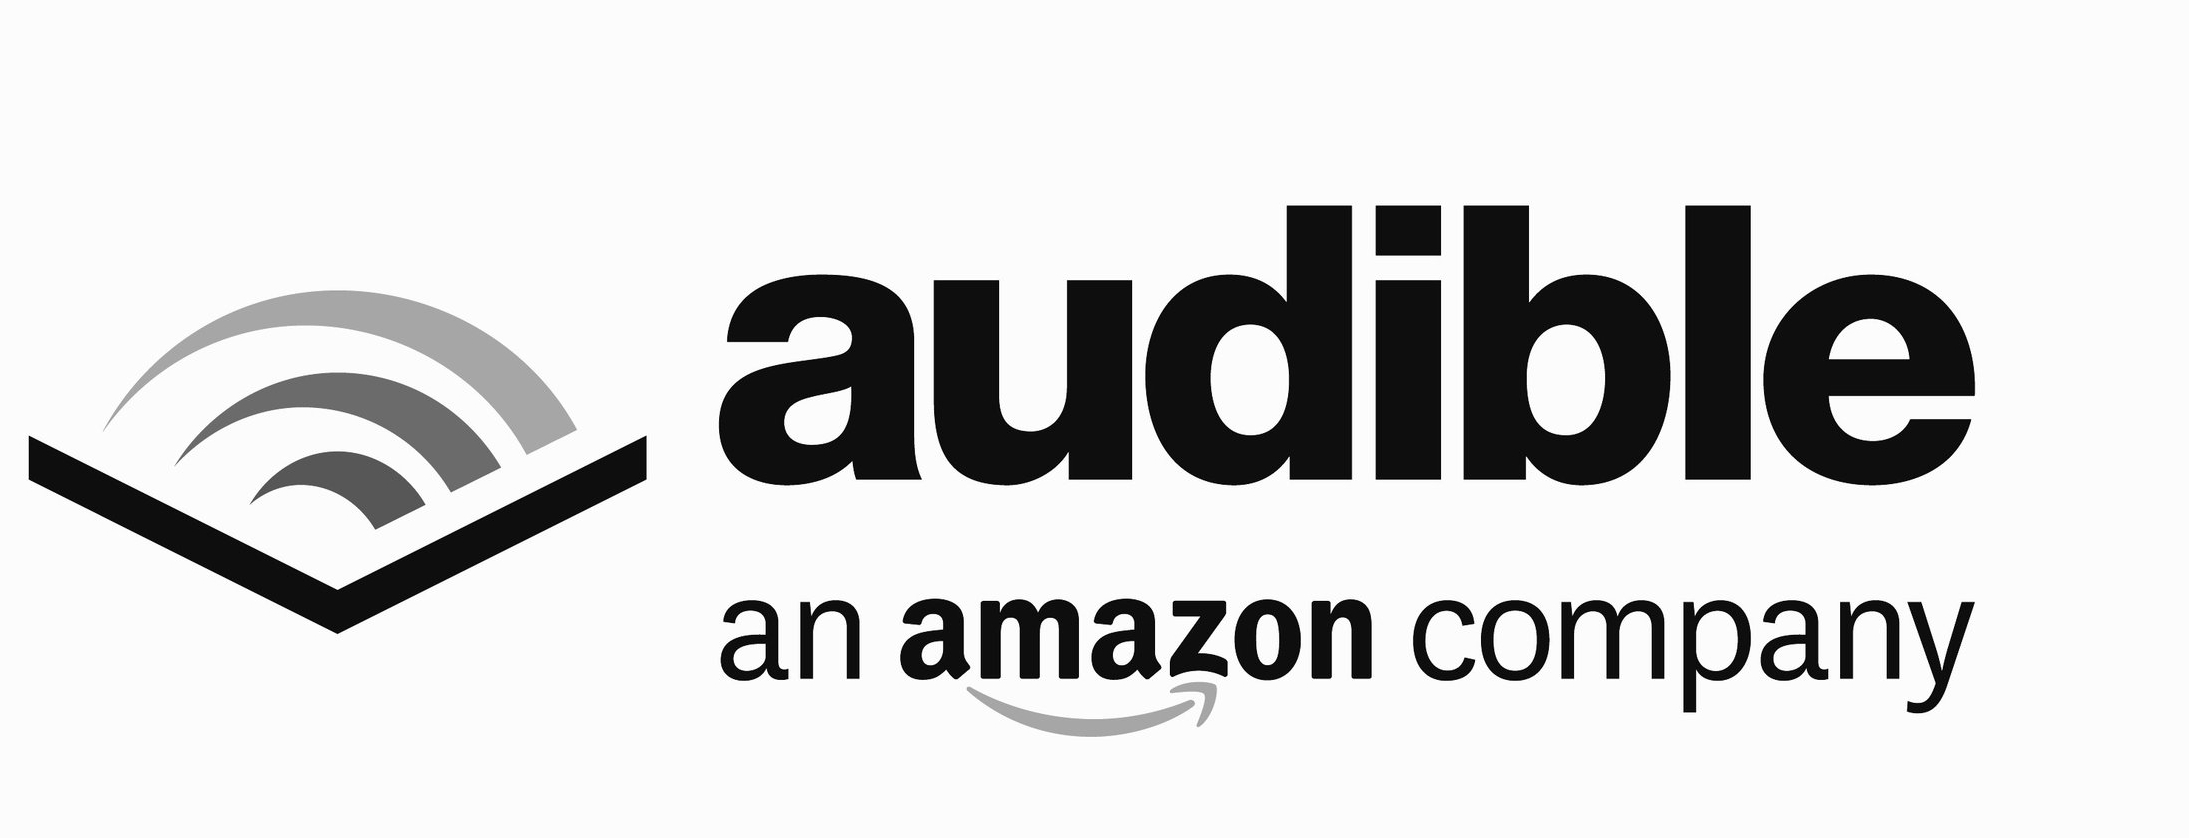 audiblelogoedited.jpeg